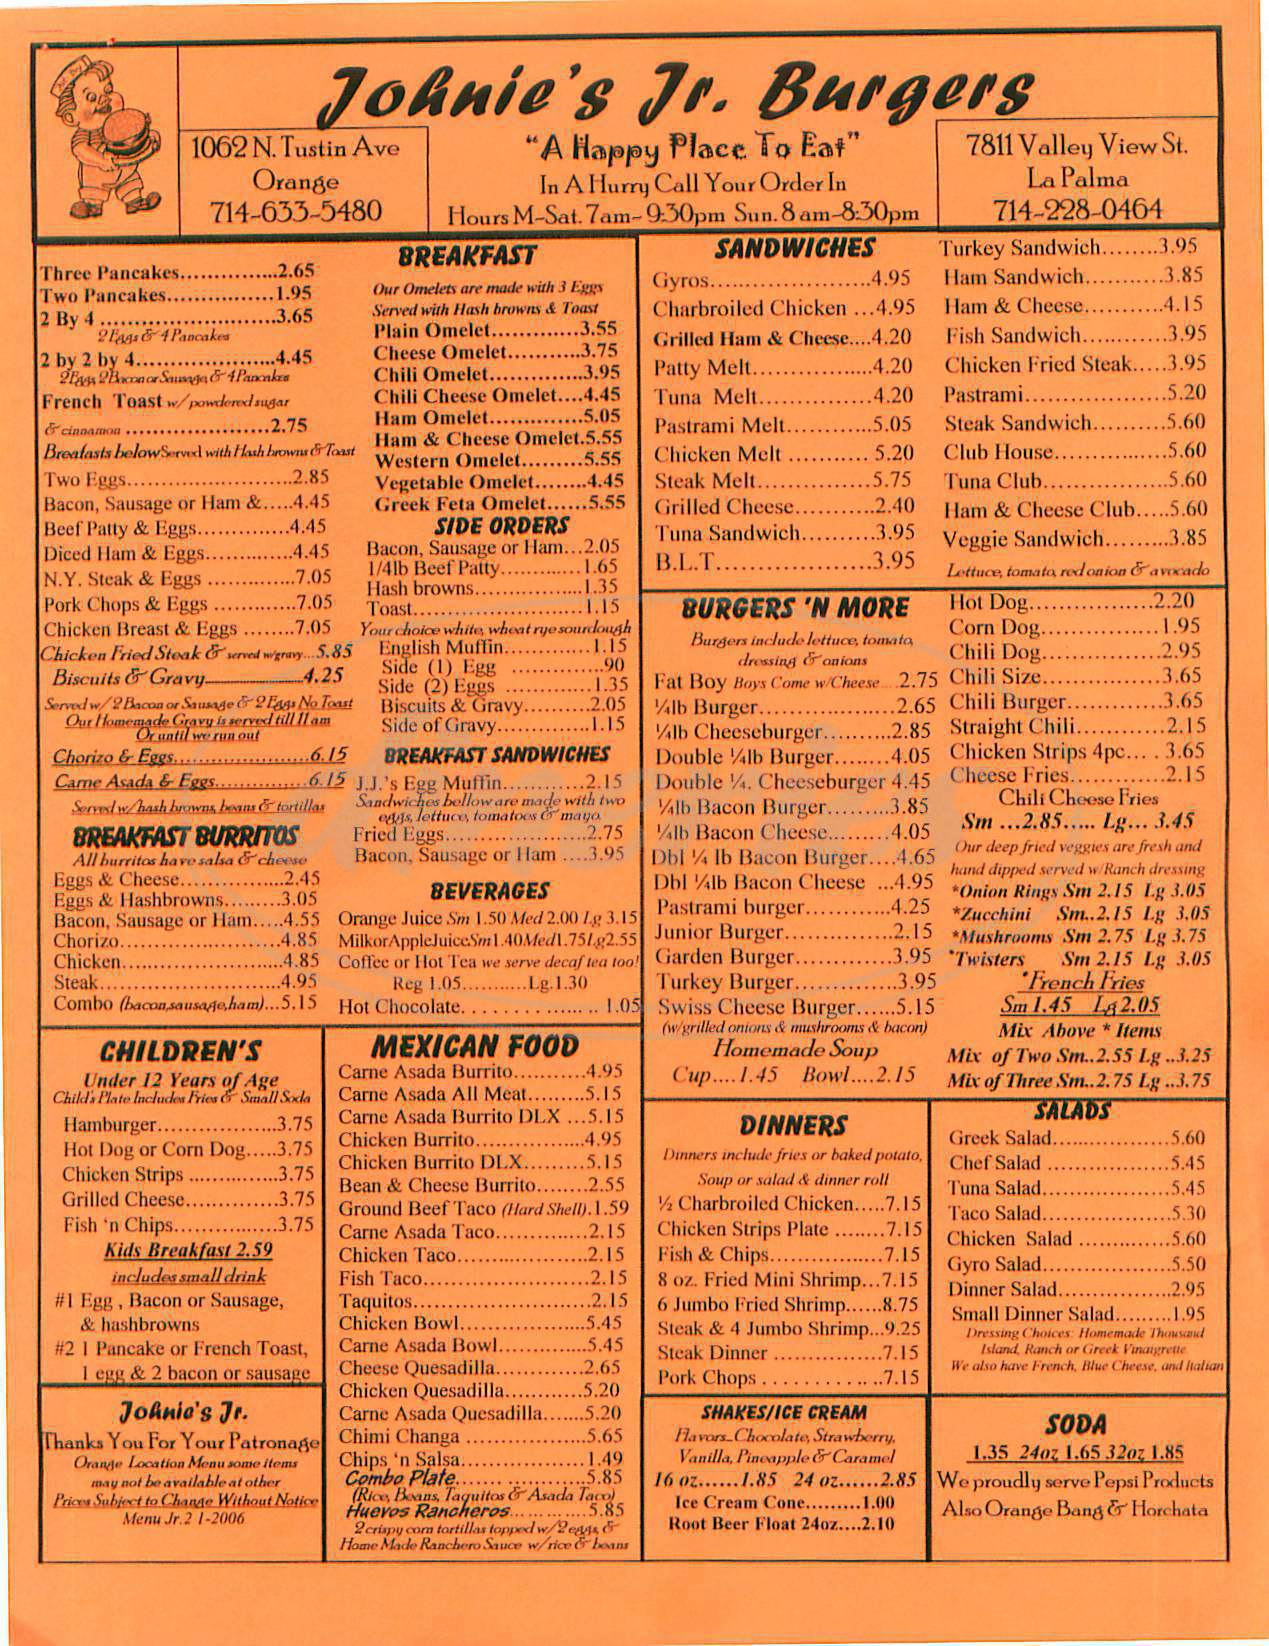 menu for Johnnie's Jr Burgers